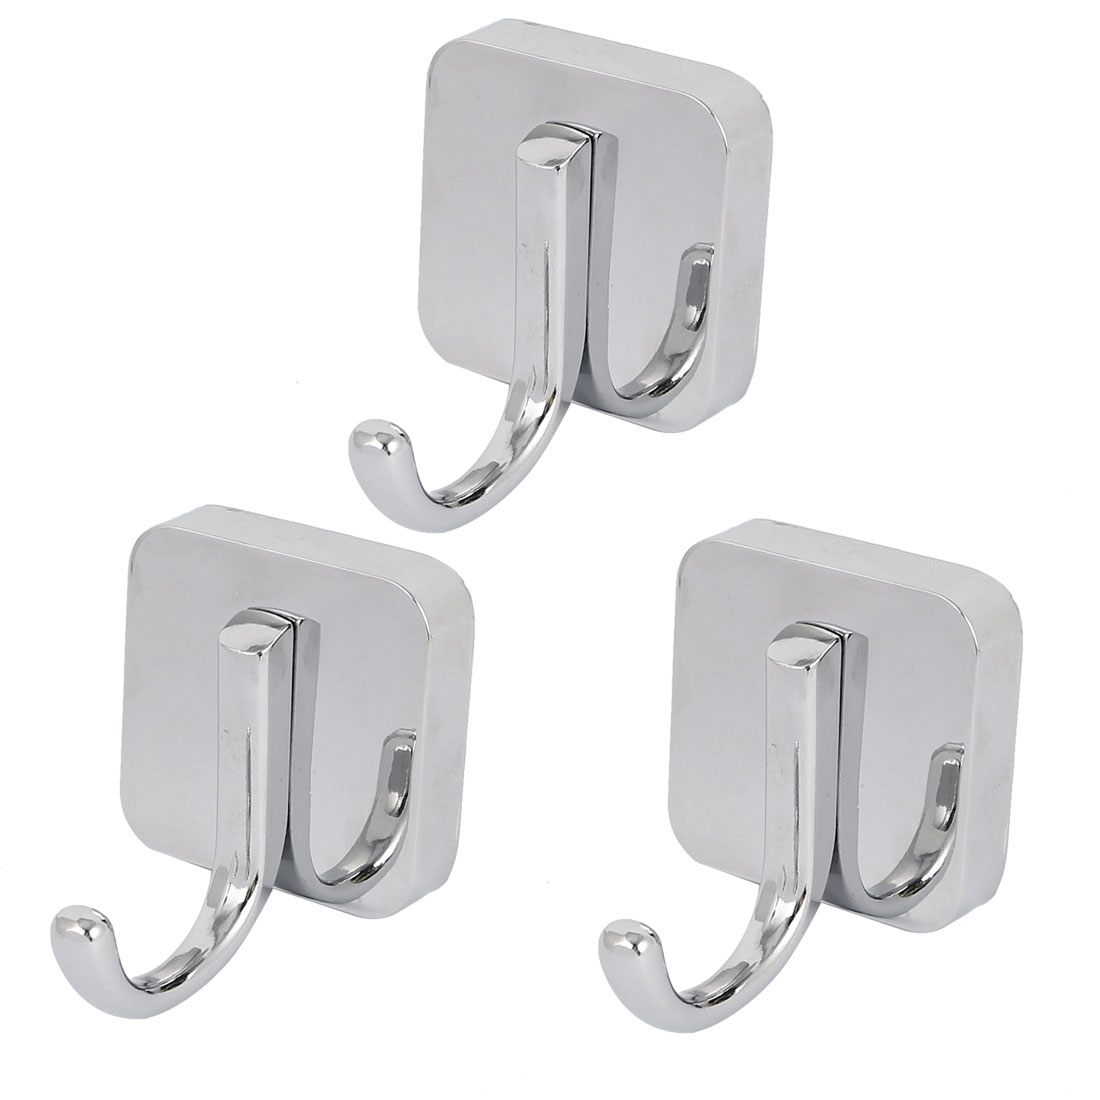 Bathroom Clothes Hanging Wall Mounted Zinc Alloy Chrome Plated Single Hanger Hook Silver Tone 3pcs